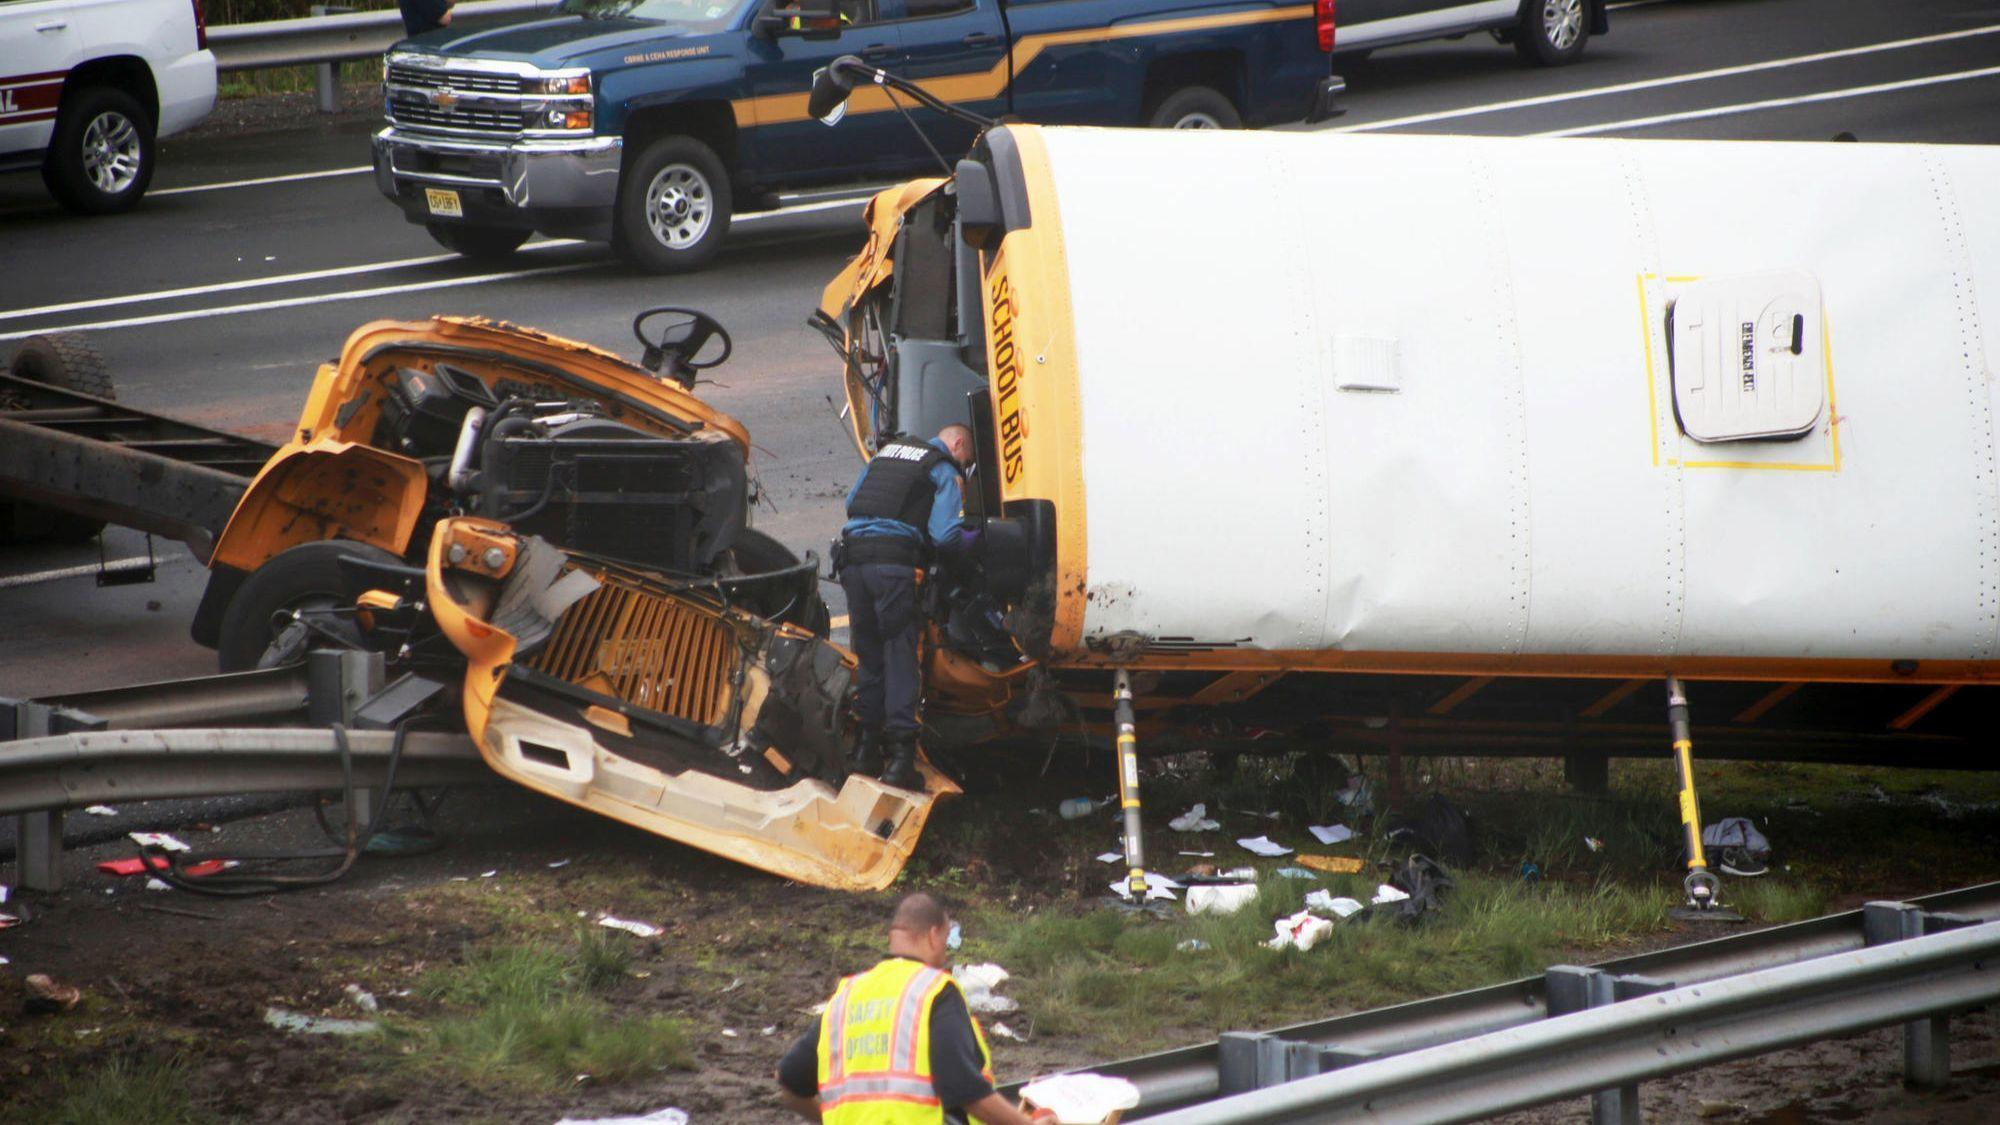 school bus collides with truck on i-80 in new jersey, killing